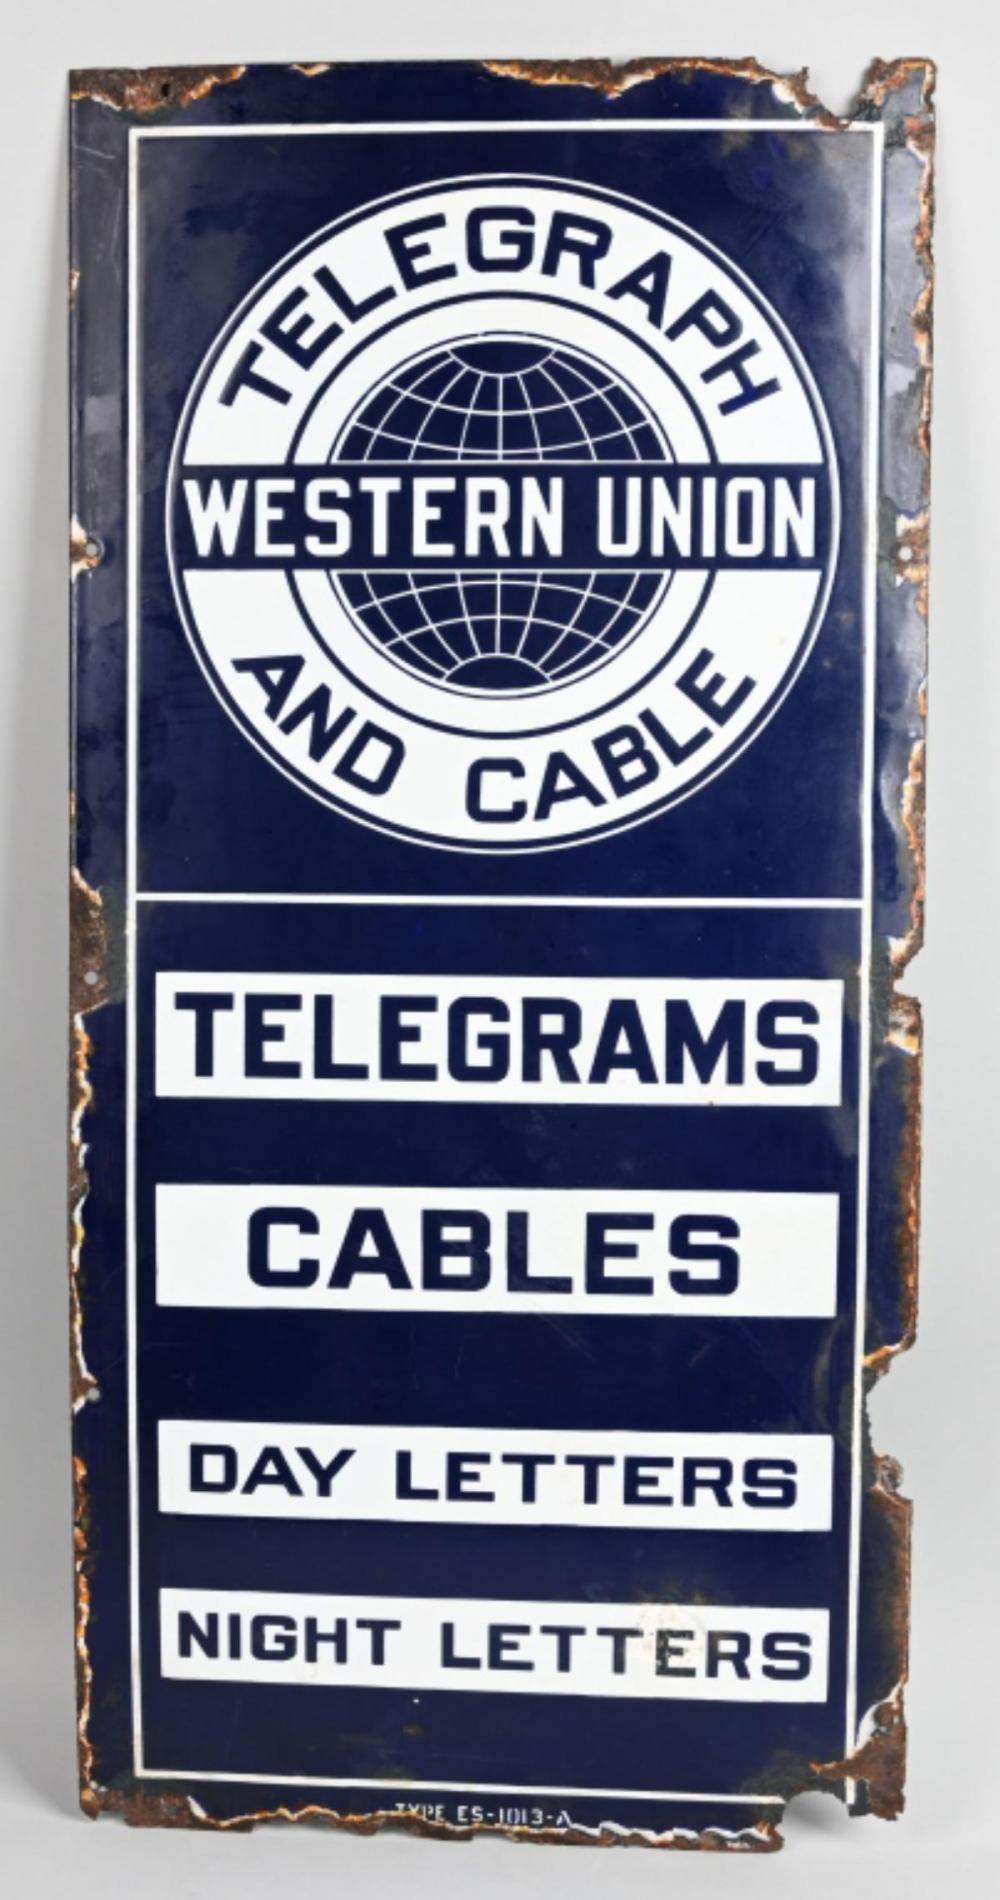 Western Union Telegrams Cable Porcelain Sign